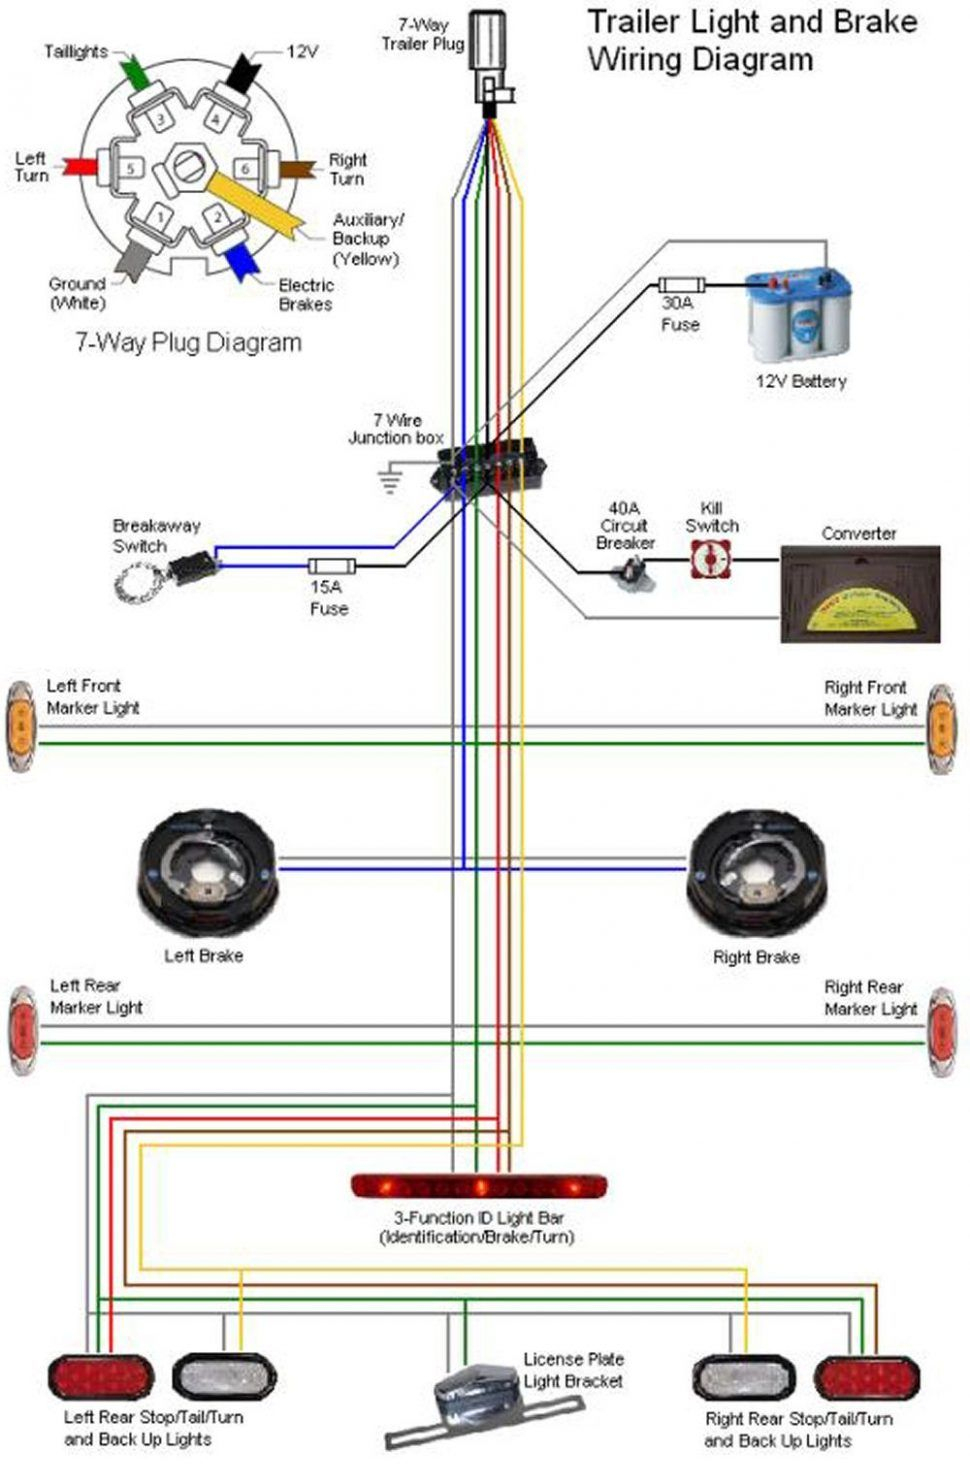 Seven Pin Trailer Wiring Diagram | Wiring Diagrams Gallery - Trailer Wire Harness Diagrams Brakes